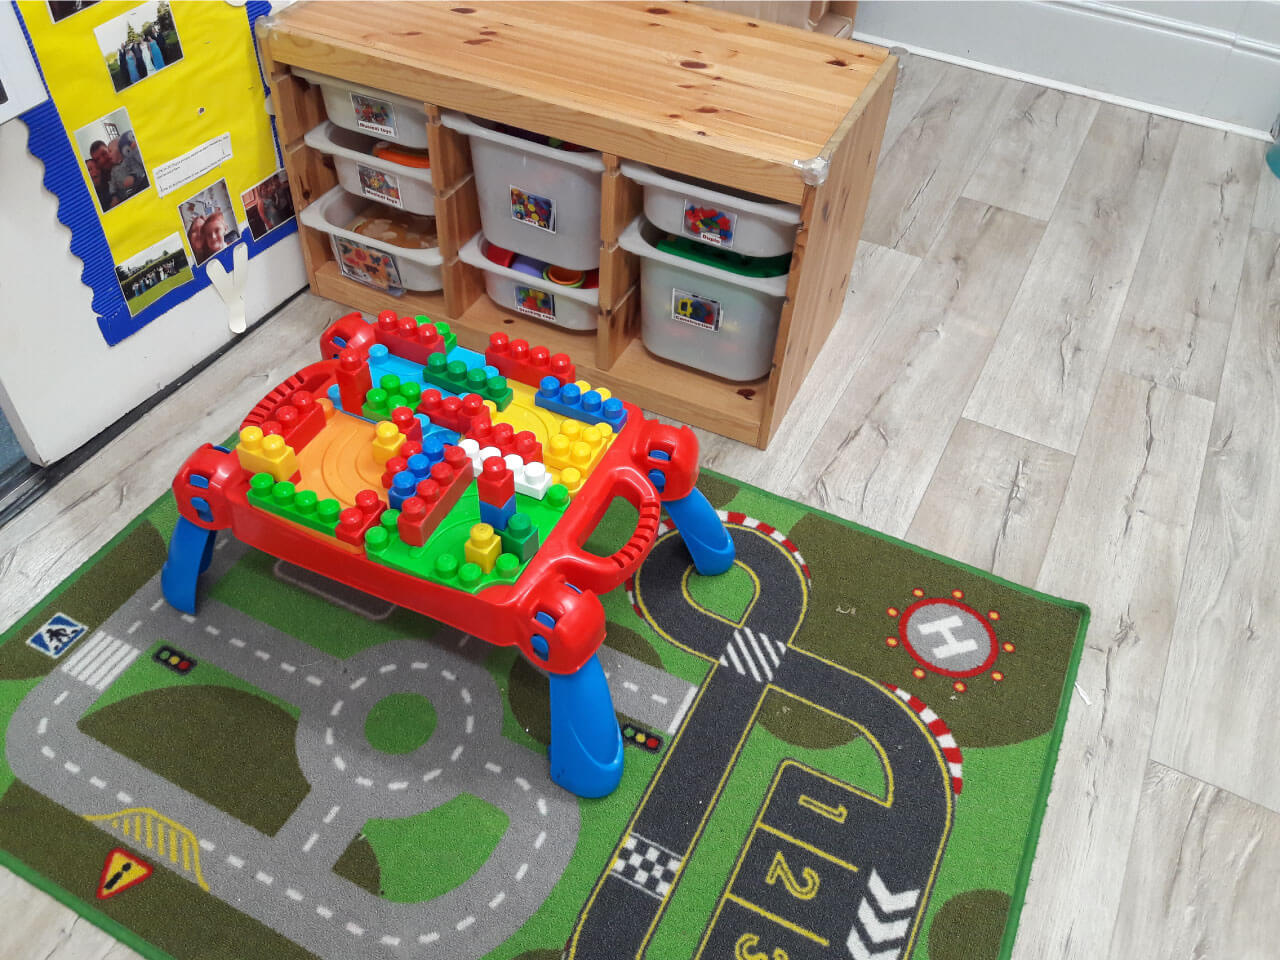 Toys for toddlers to play and learn with together